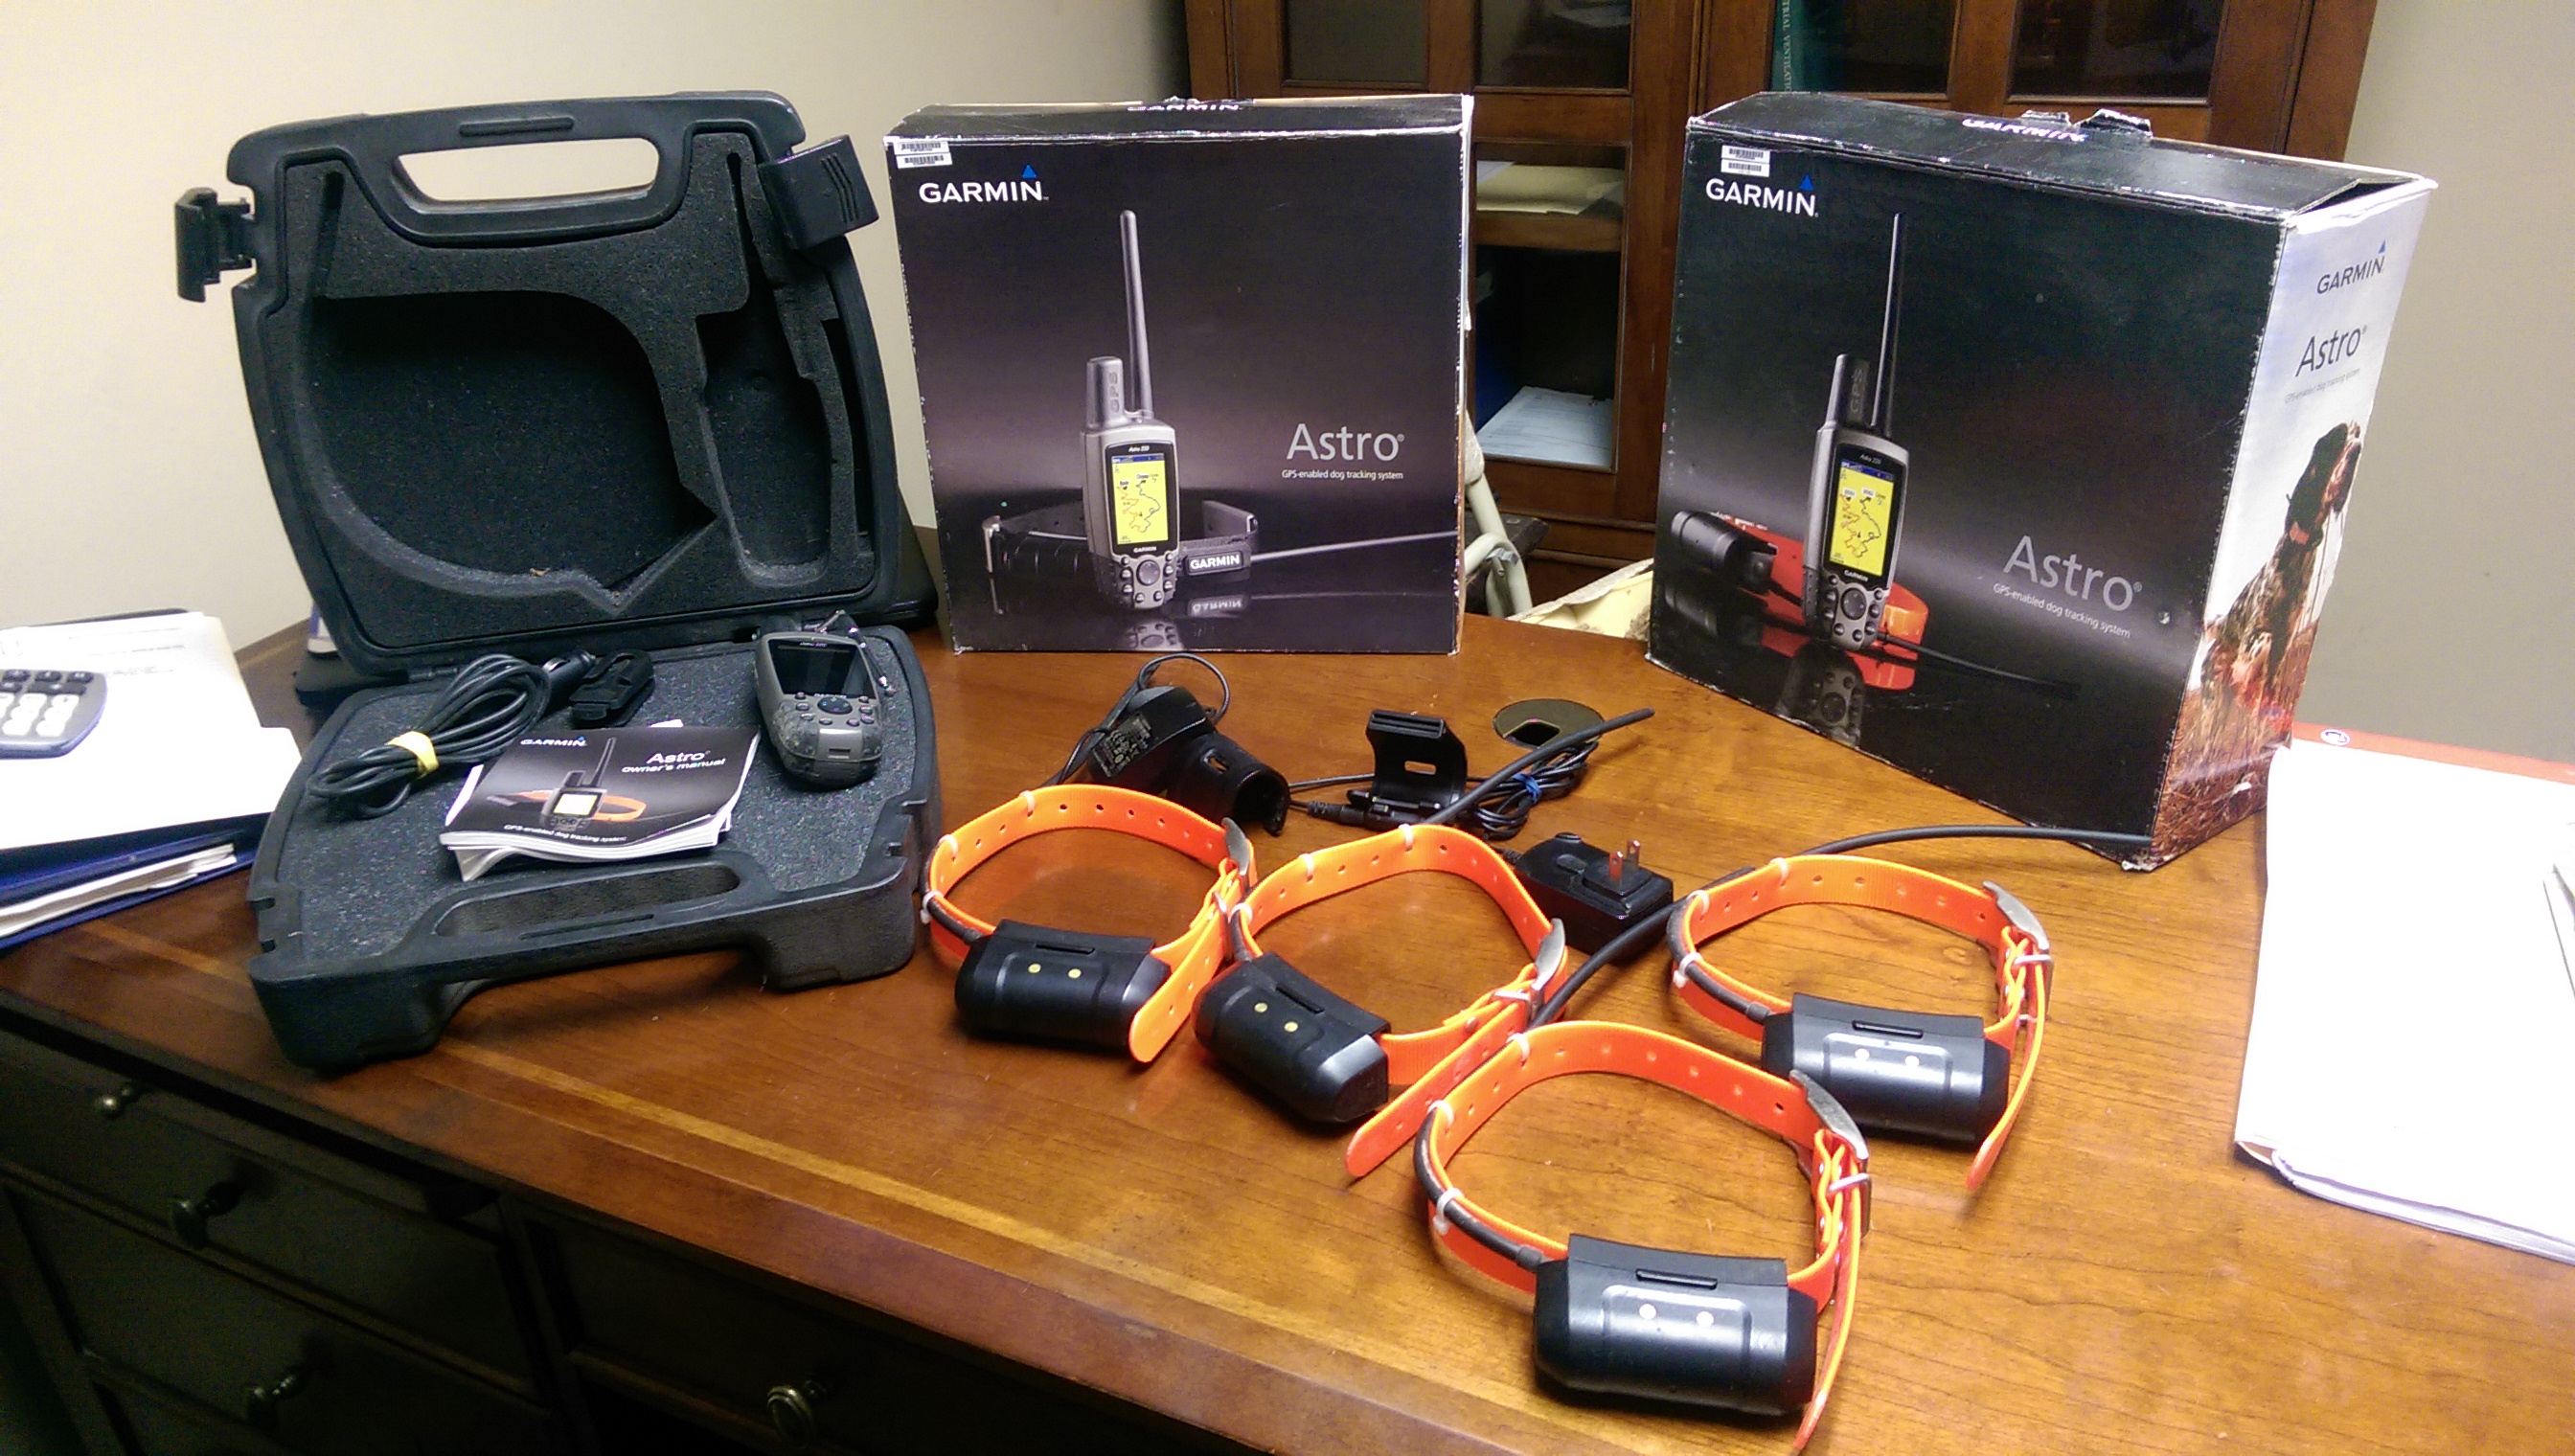 Garmin Astro 220 GPS with (4) DC 40 Tracking Collars ...